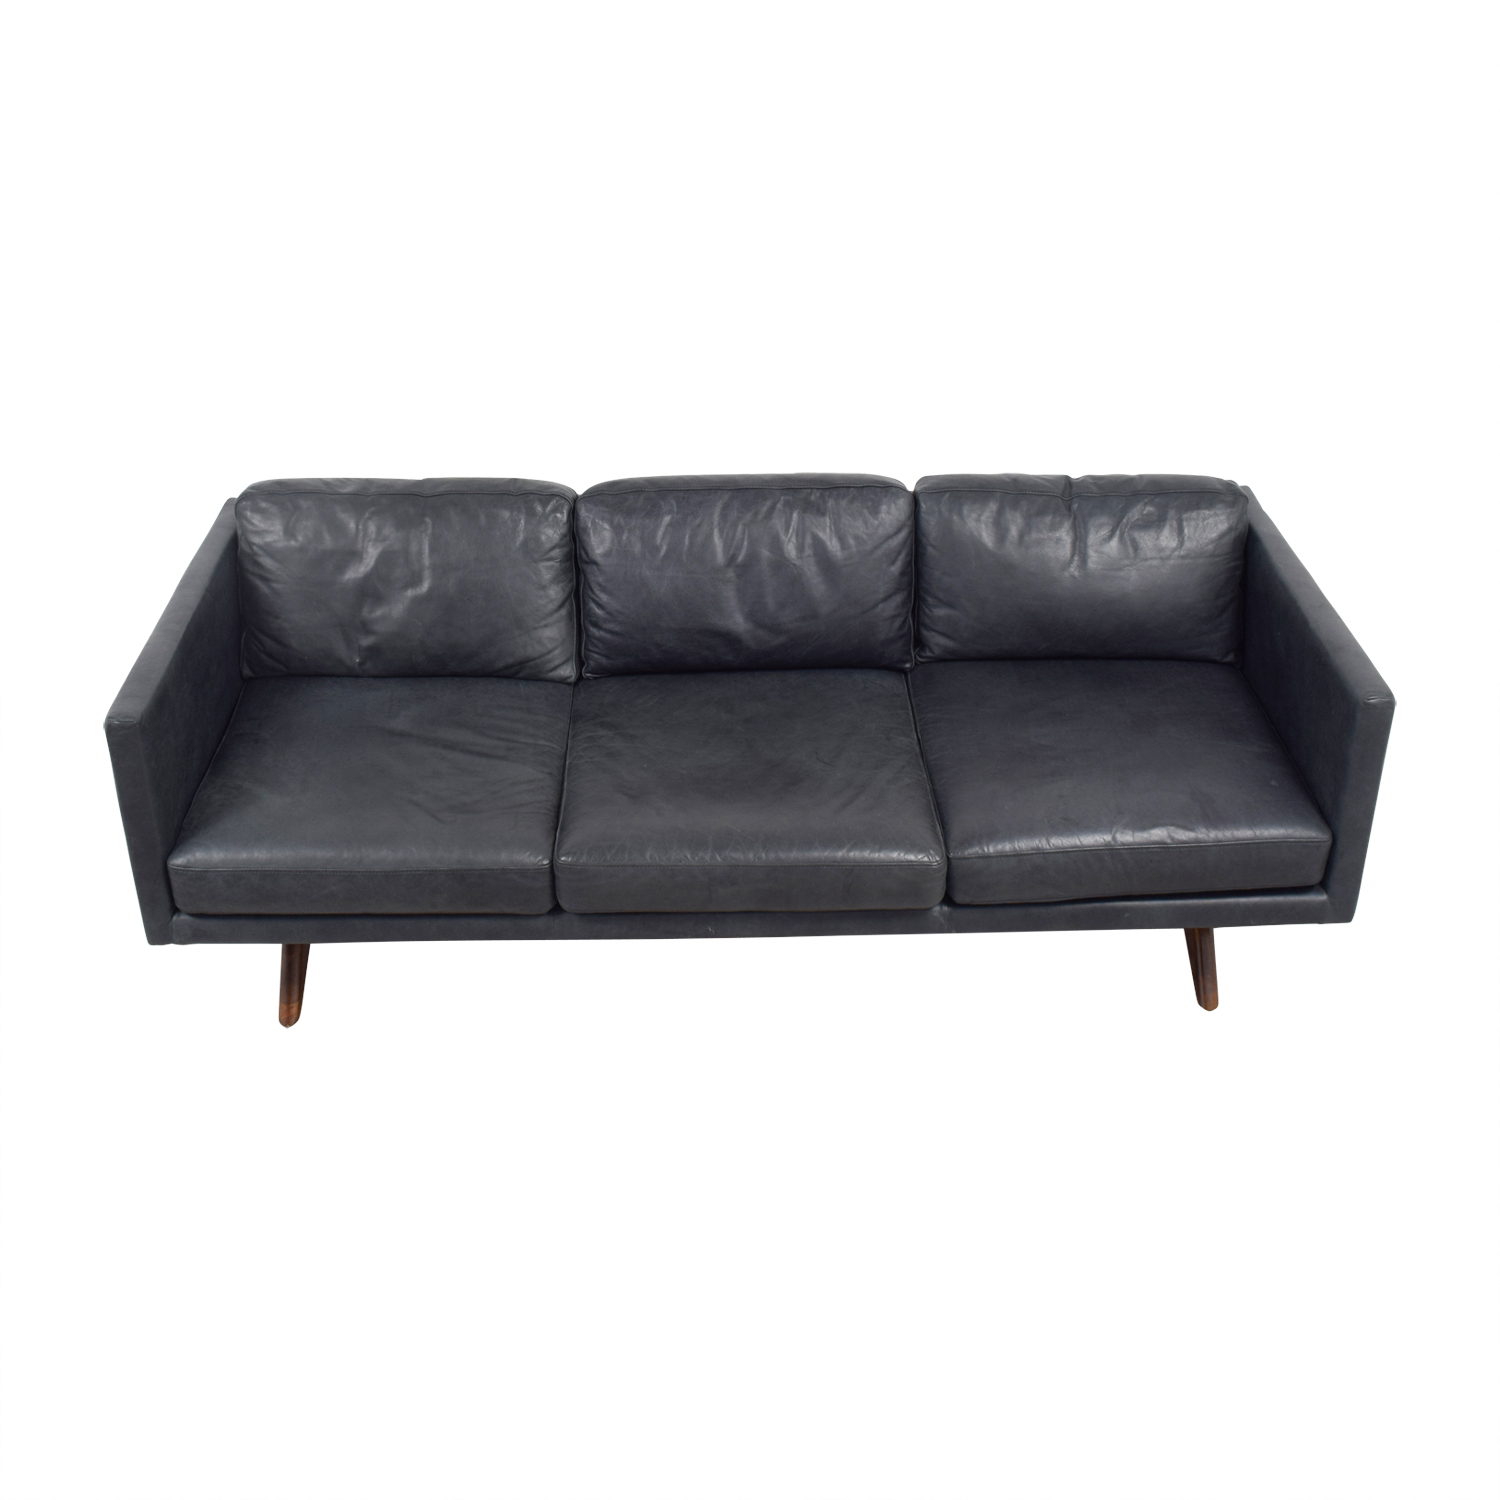 West Elm Brooklyn Grey Leather Three-Cushion Sofa / Sofas